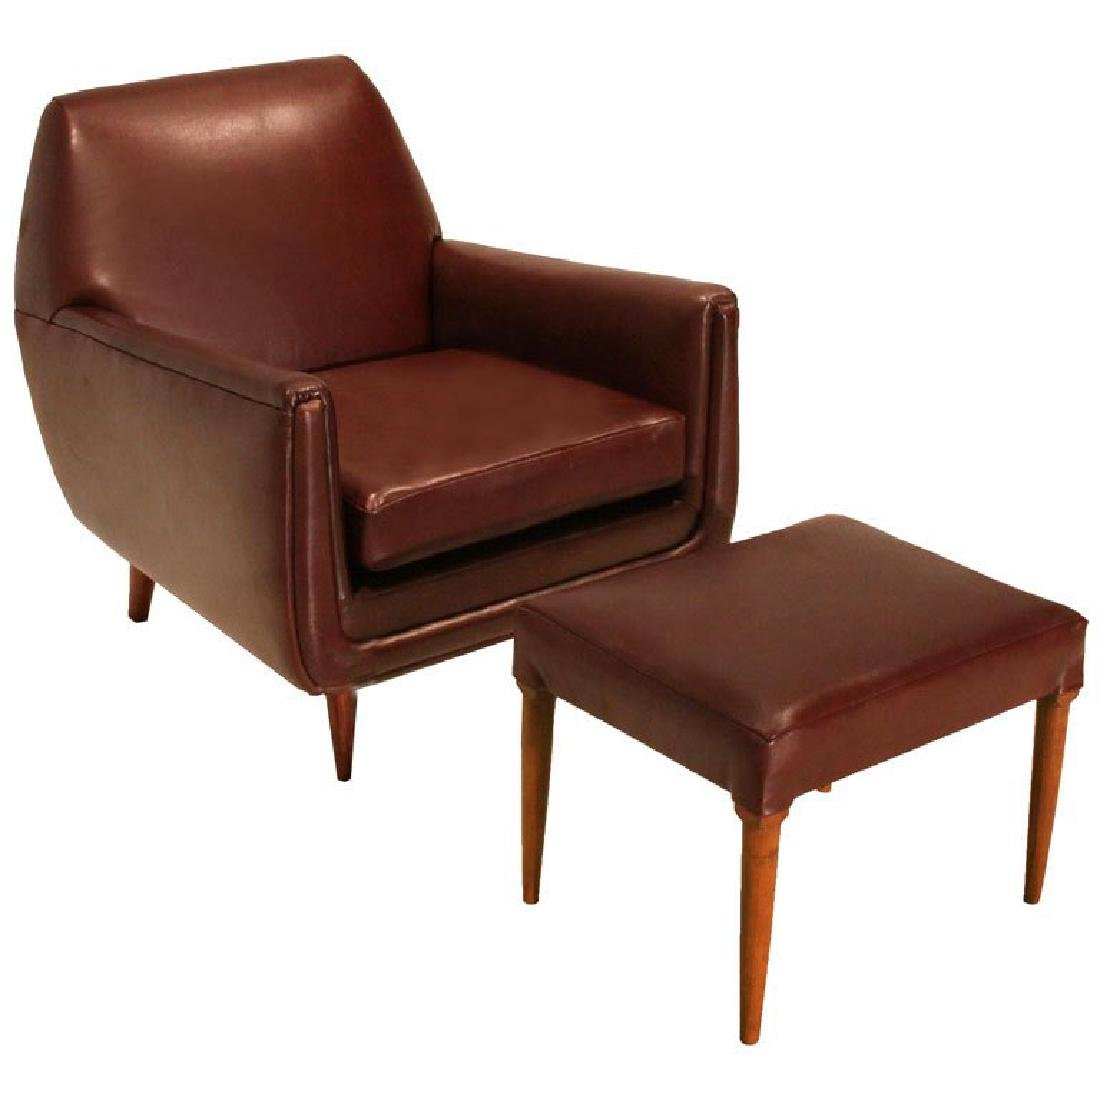 Brazilian Modernist Lounge Chair